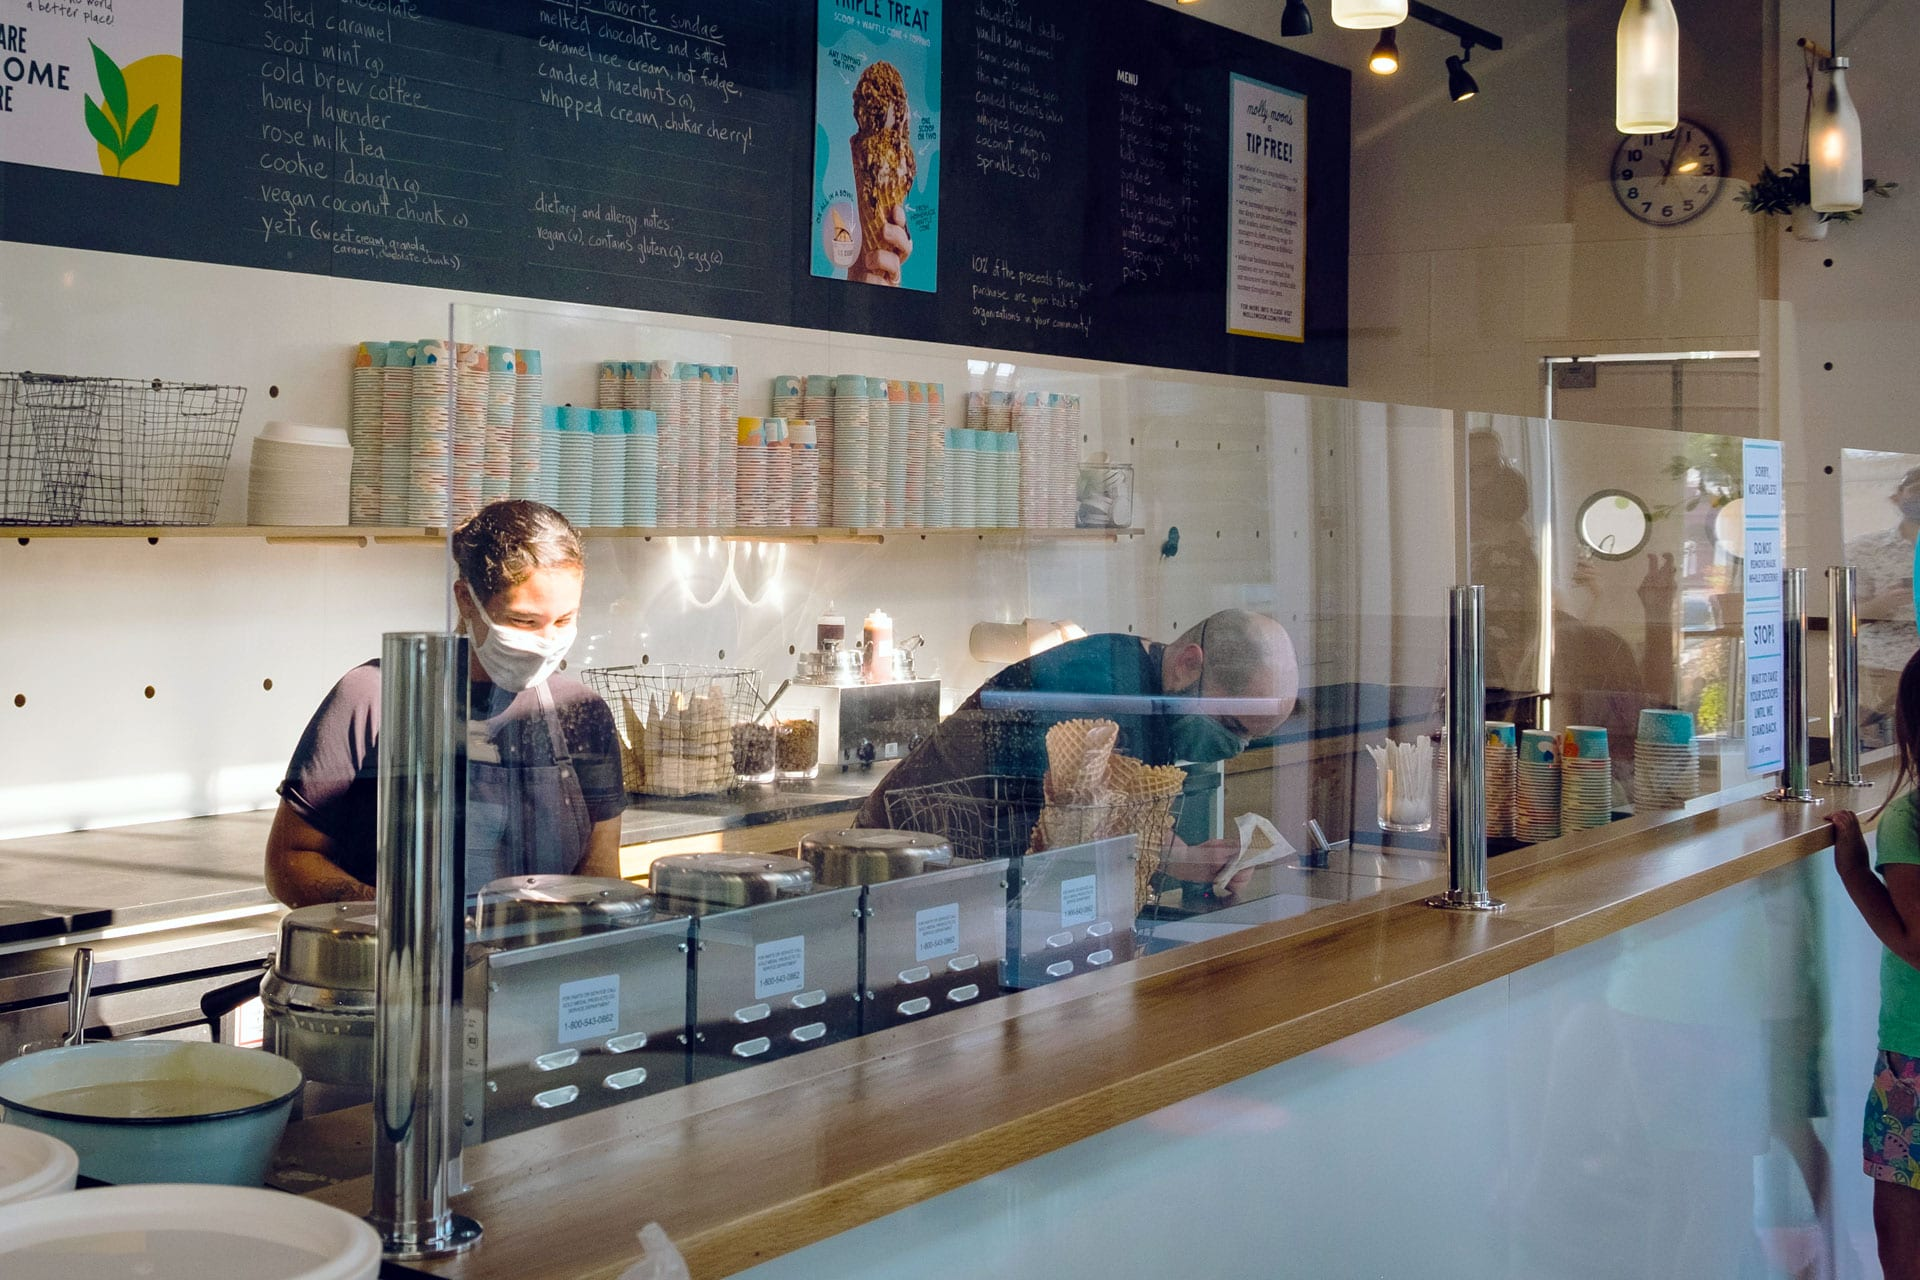 Two workers behind the counter at an ice cream shop.